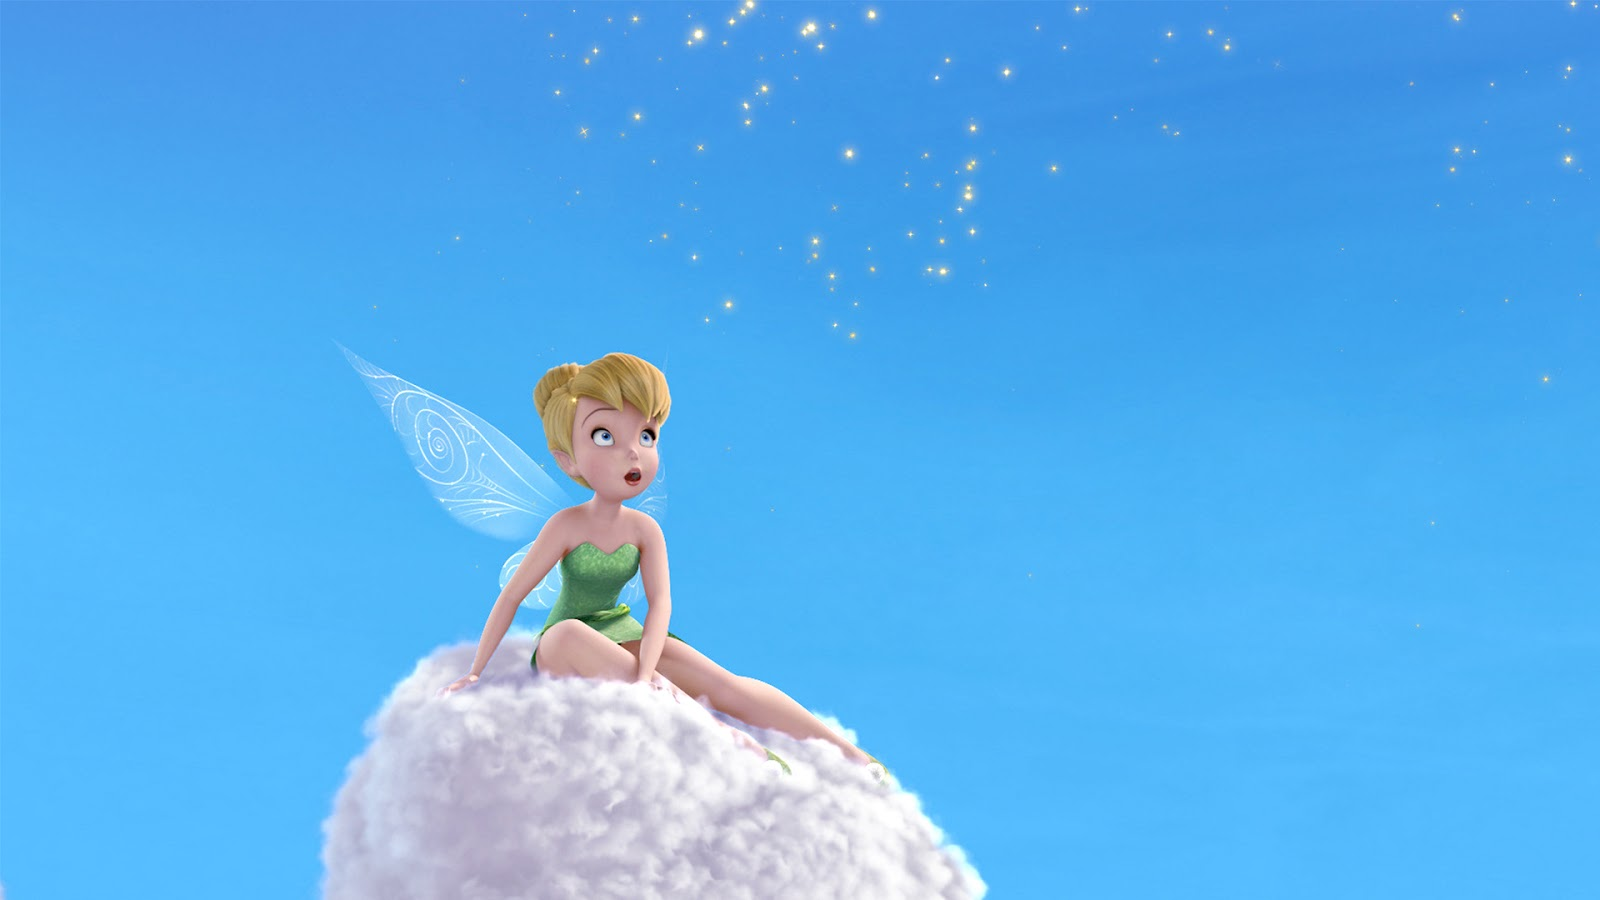 tinkerbell hd wallpapers high definition free background